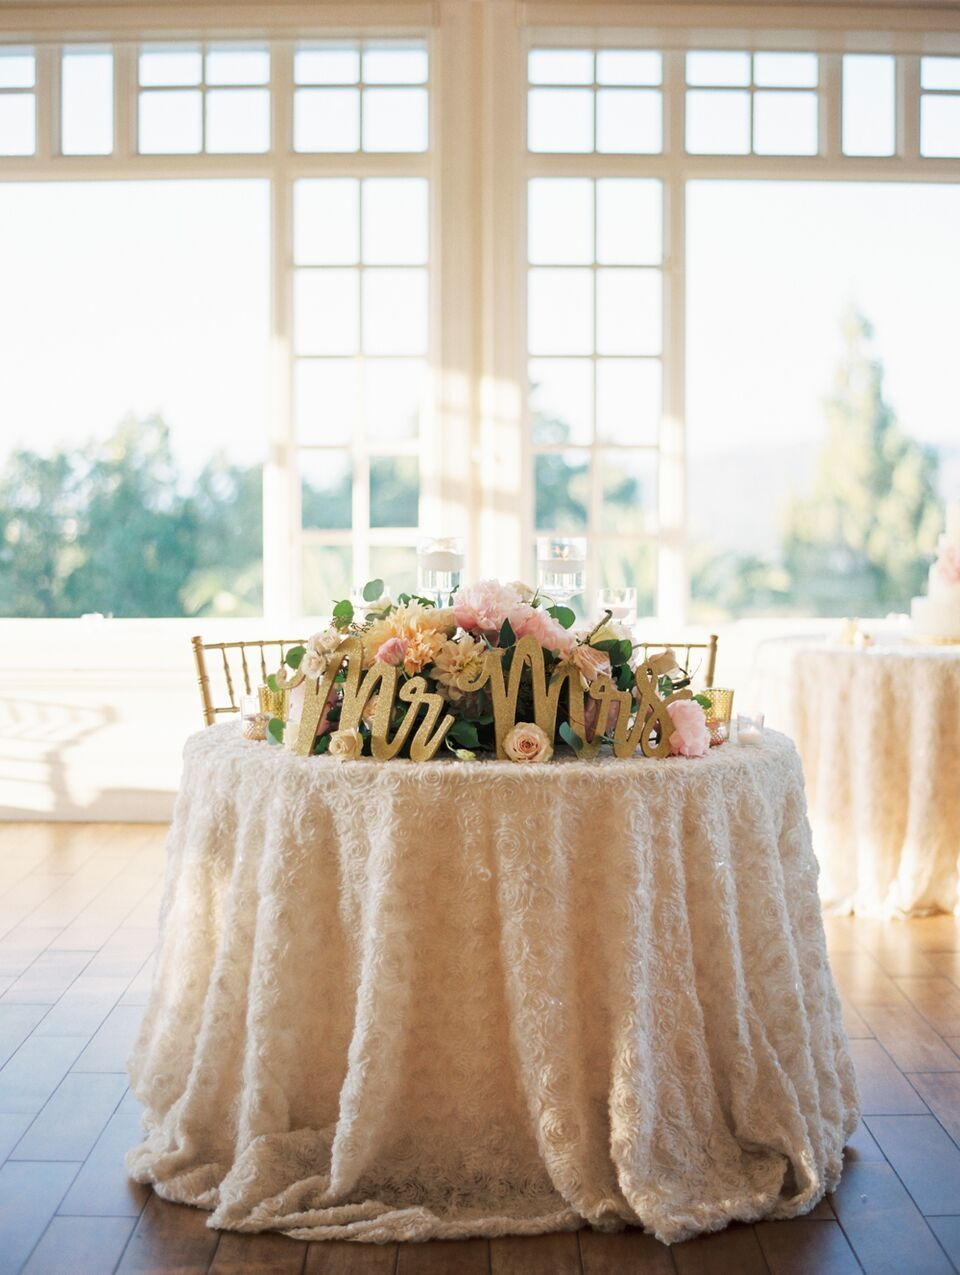 April and michaelus country club wedding at carmel mountain ranch